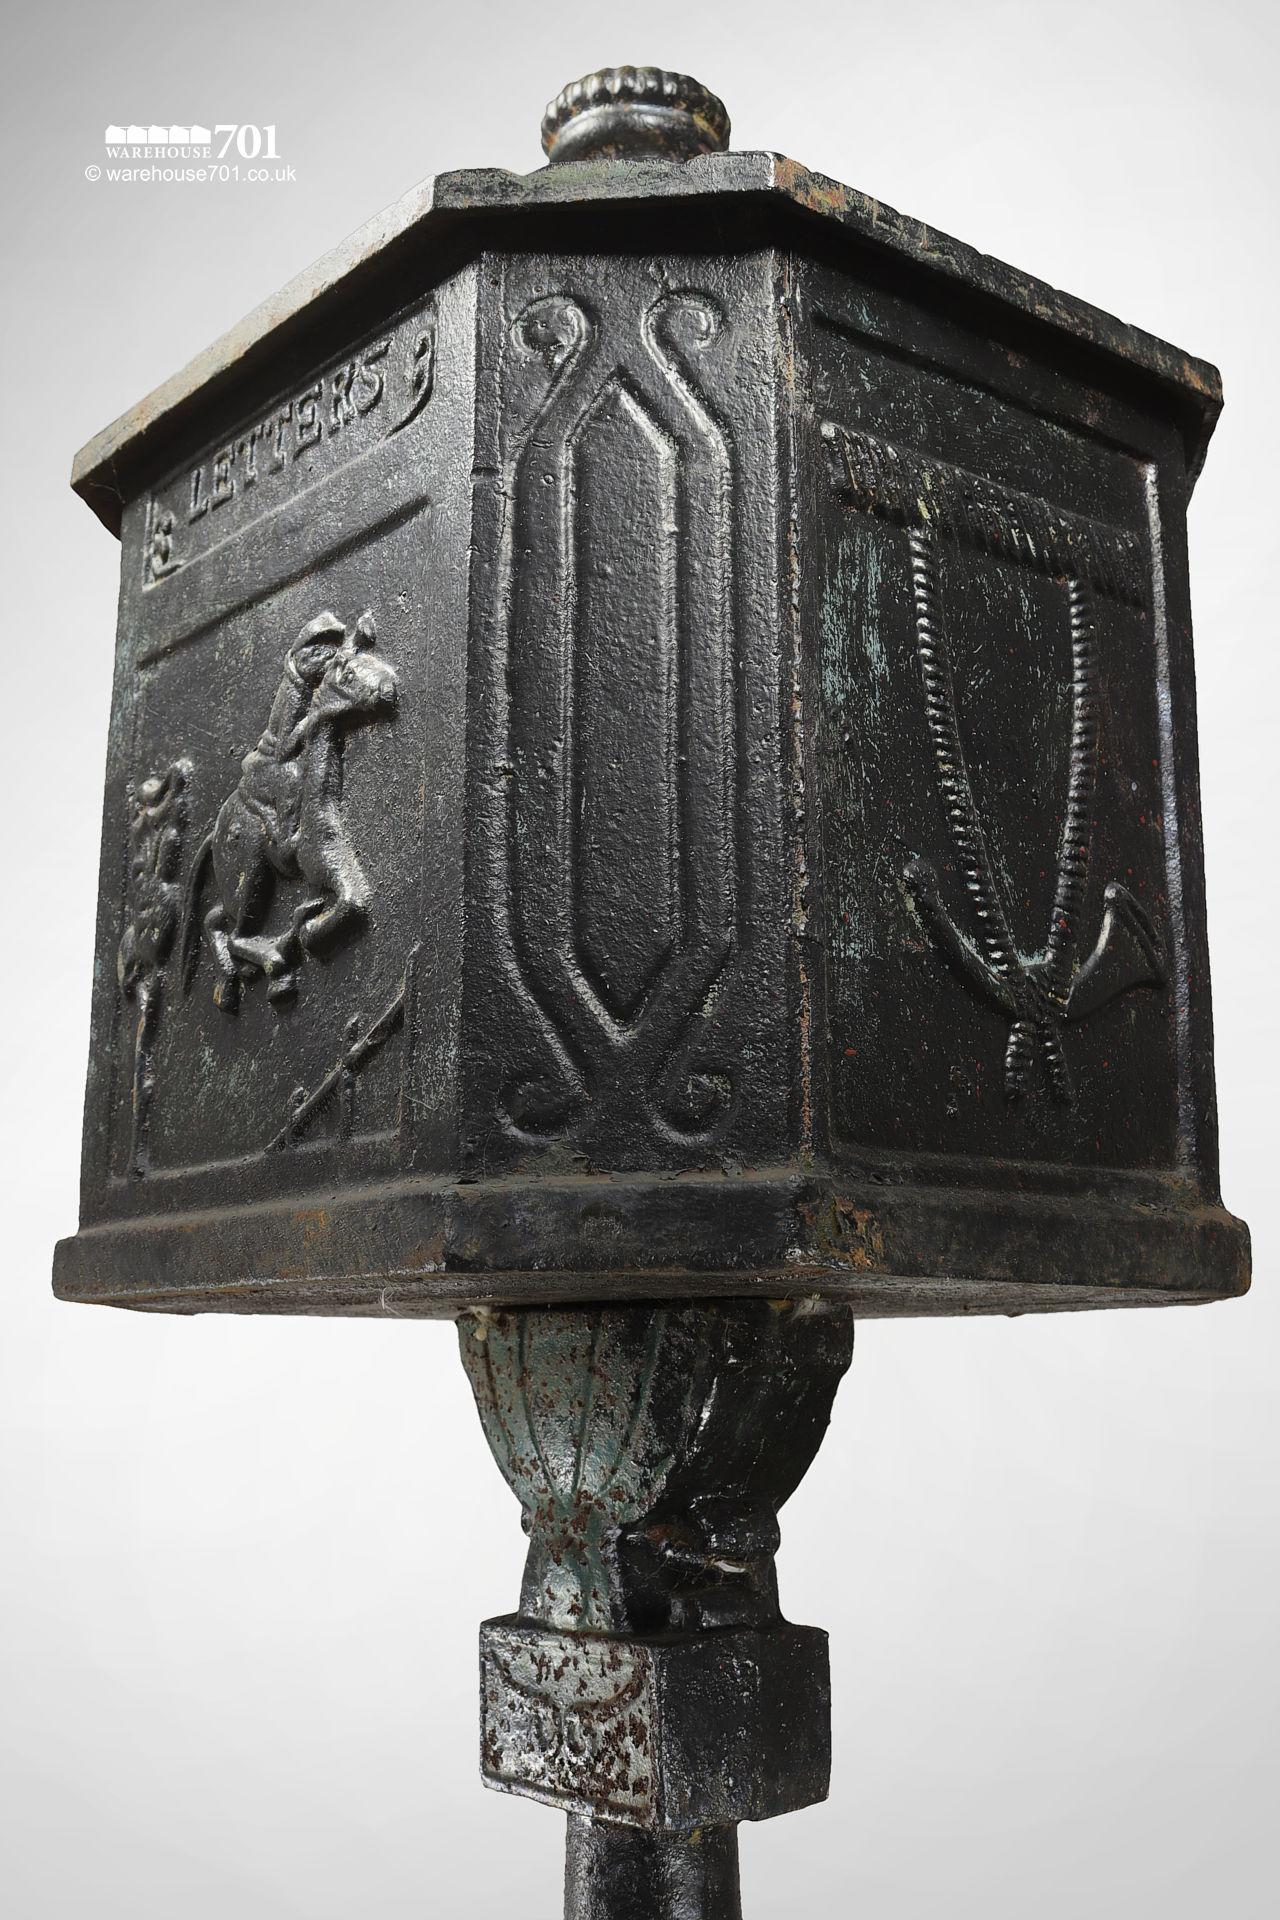 Salvaged Cast Iron Letterbox or Post Box on a Plinth #3